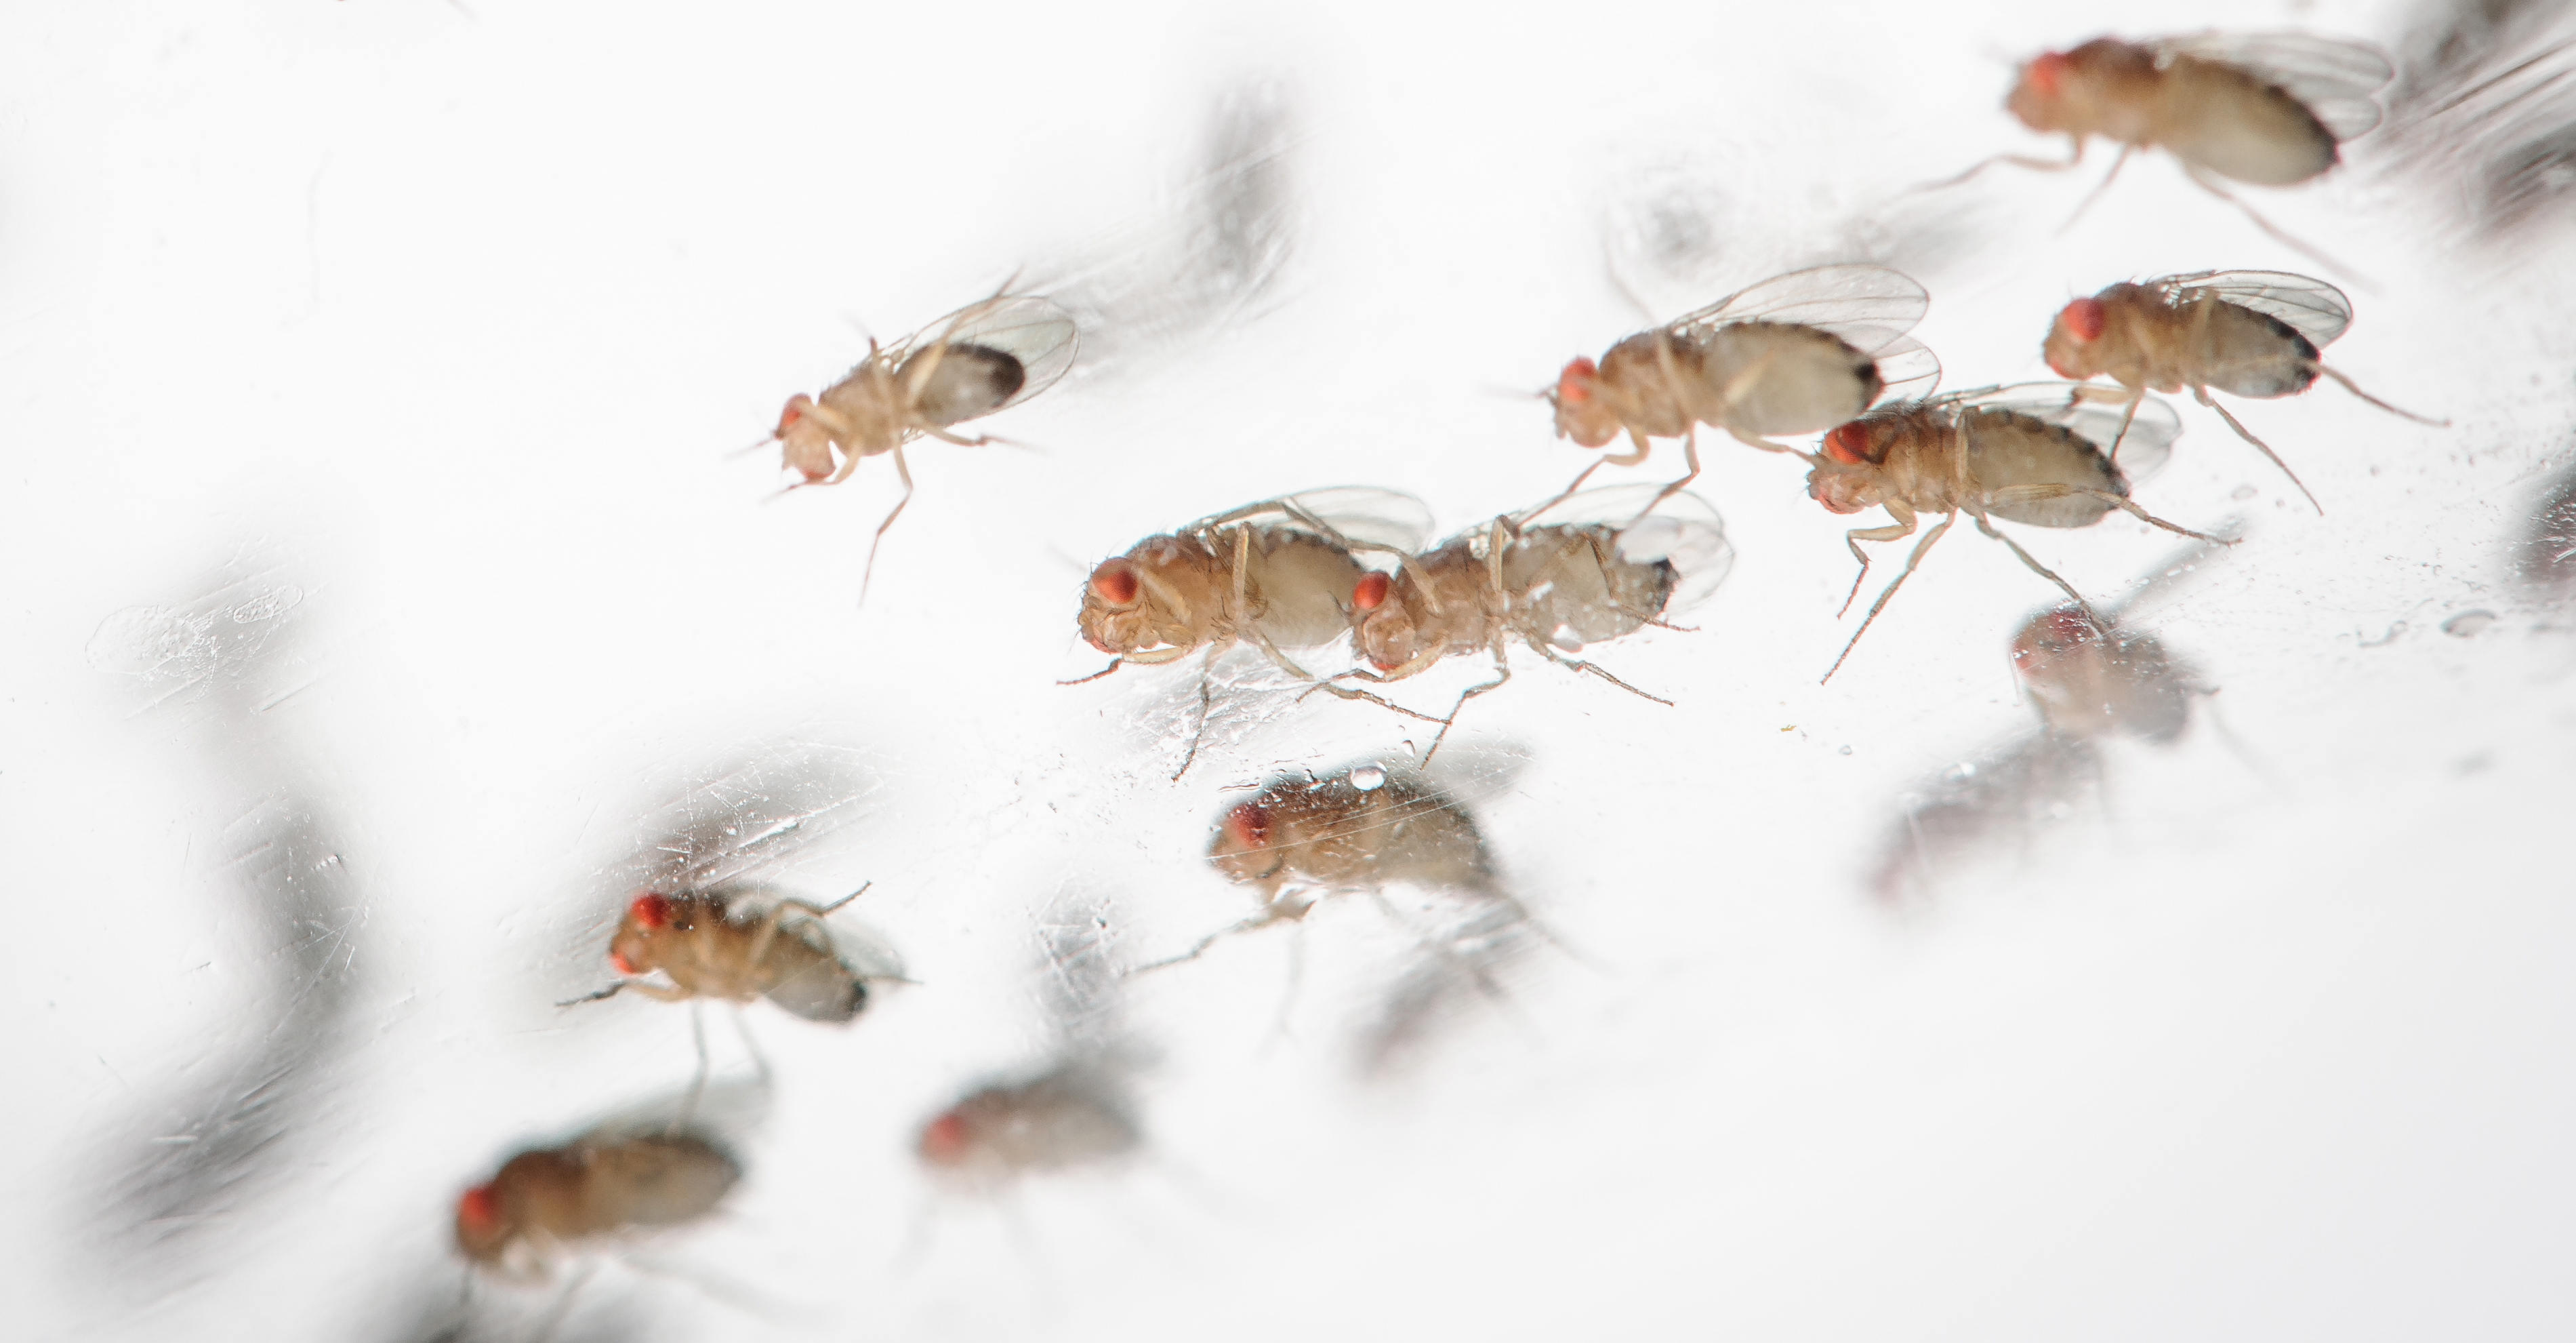 buzzing activity fruit flies orbit earth for science nasa fruit flies such as these spent one month aboard the international space station during the heart